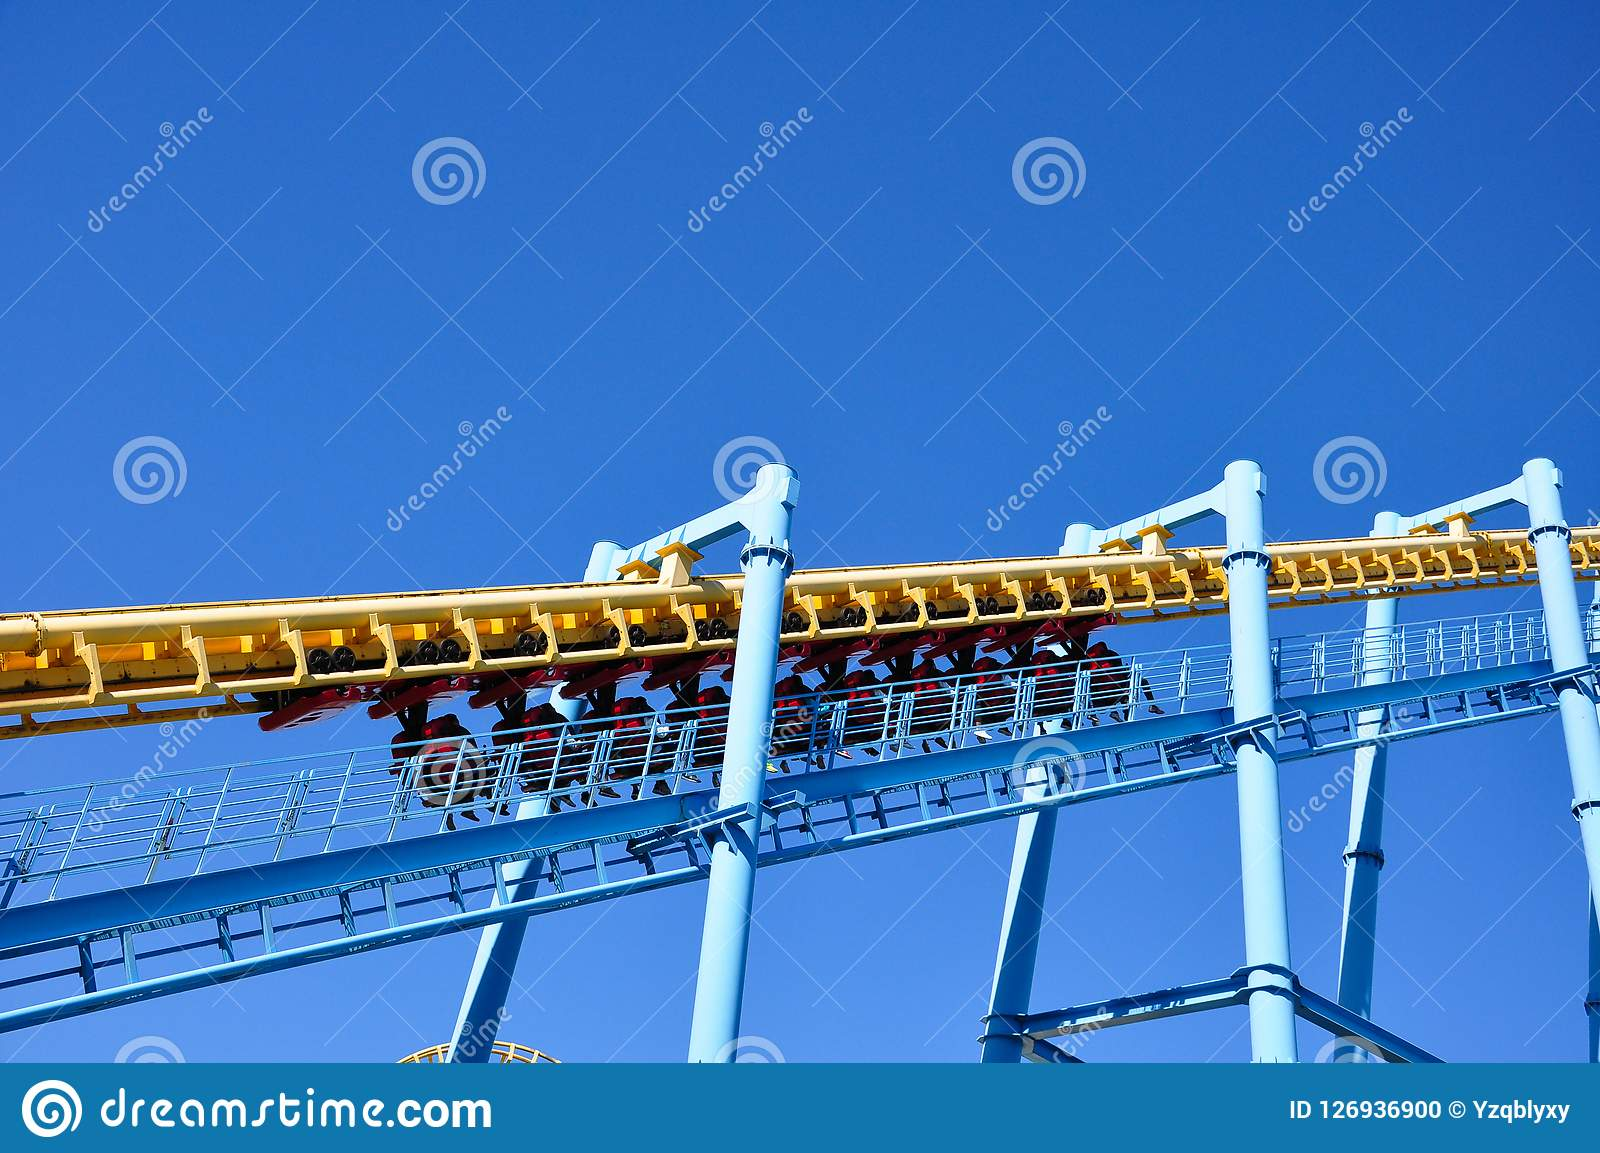 The roller coaster is starting on a sunny day